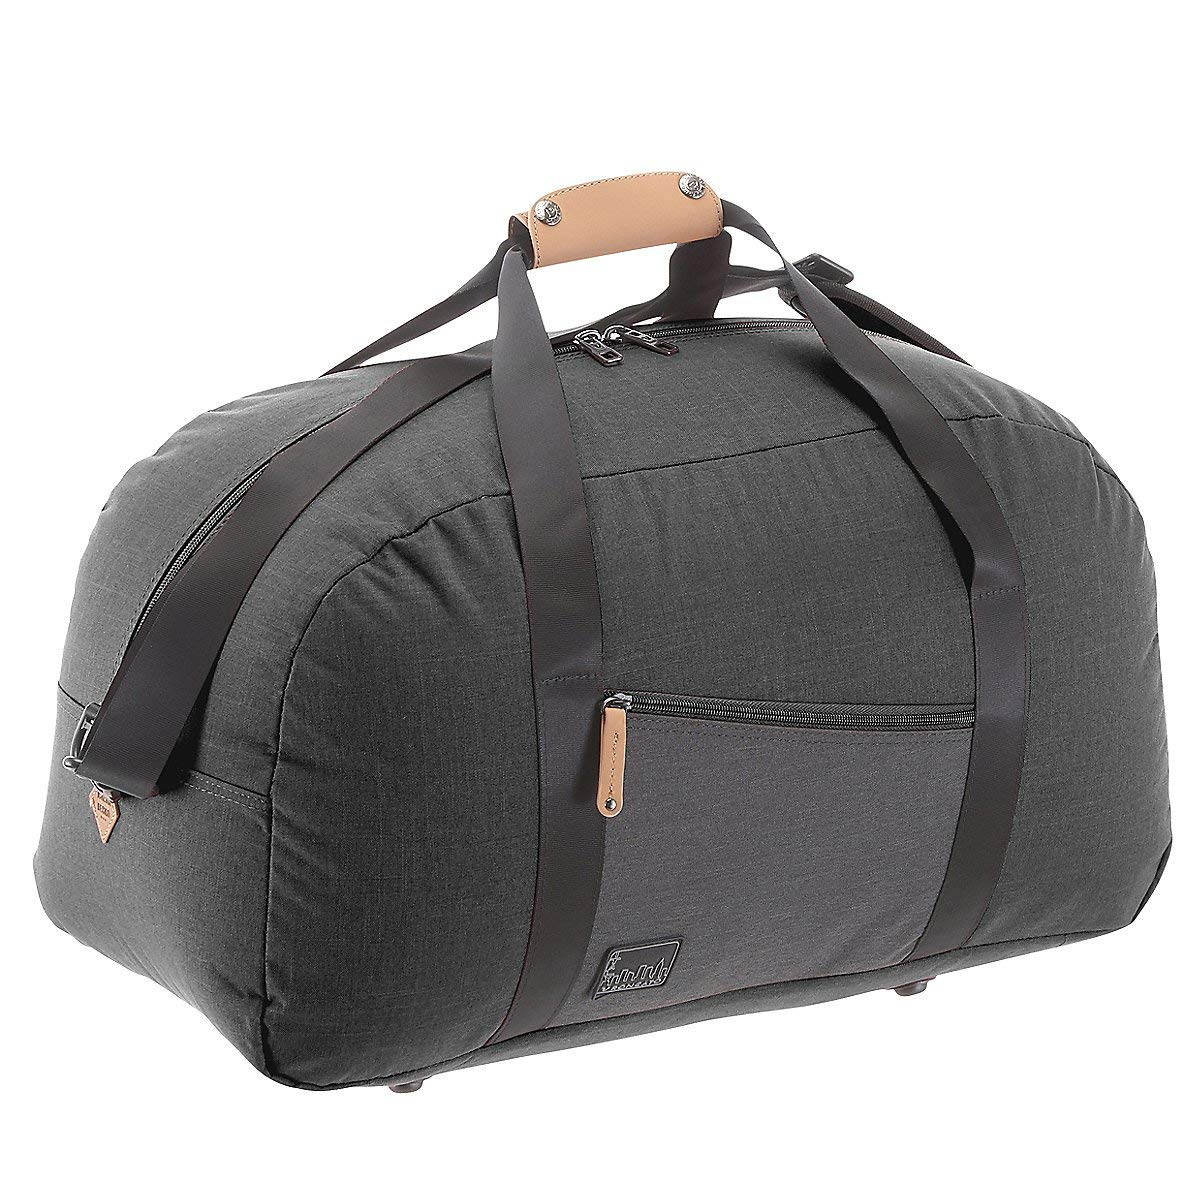 Grey 43 liters Gris 58 cm Roncato Adventure Travel Duffle